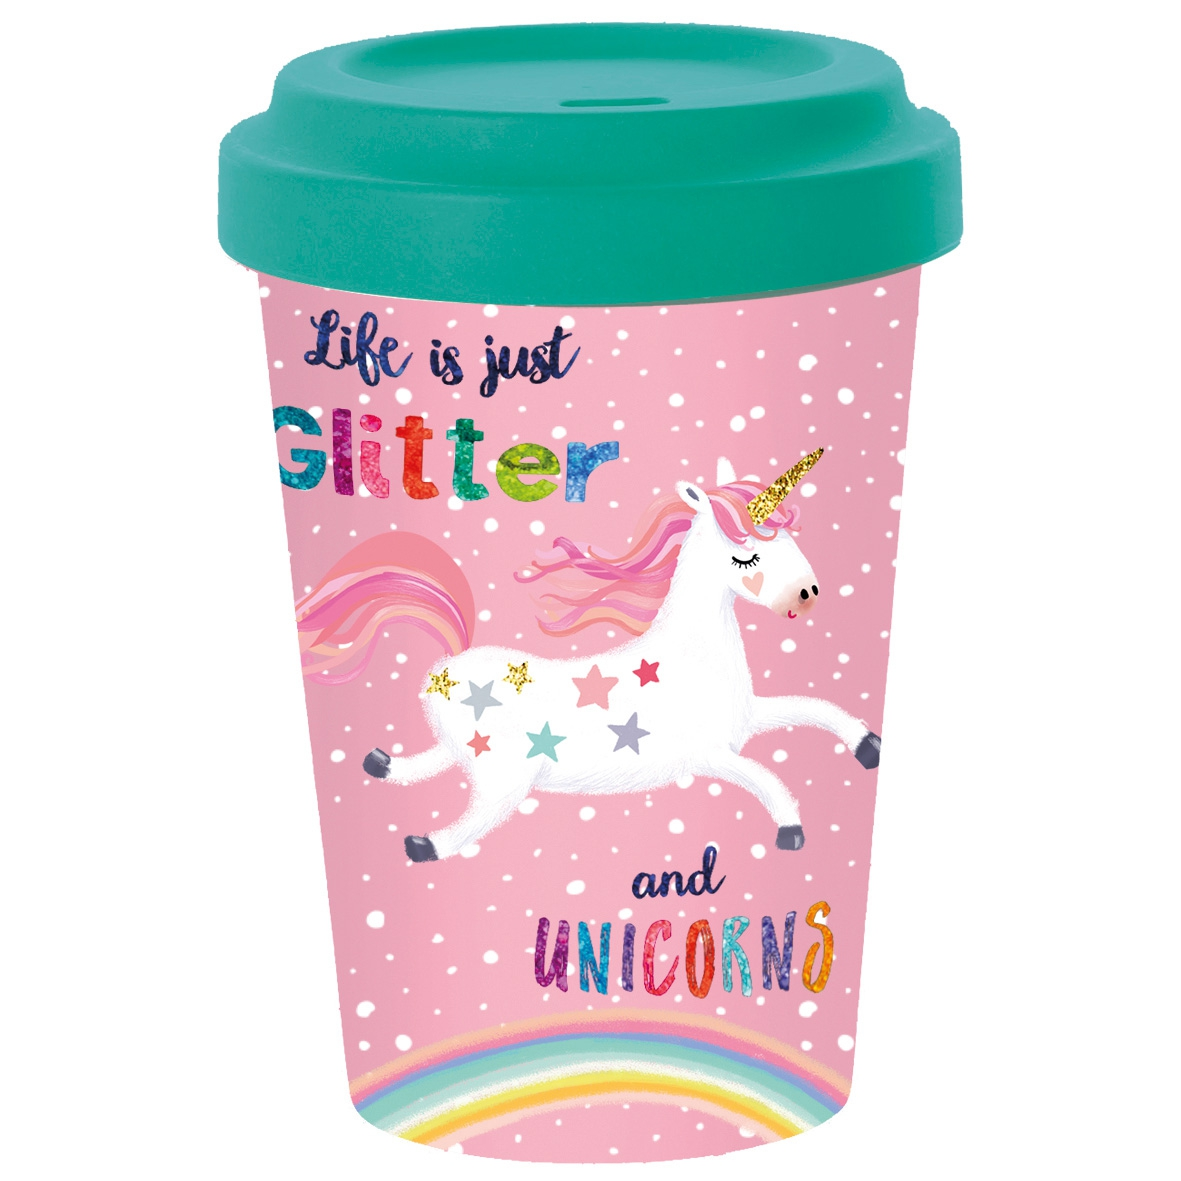 Bamboo mug To-Go - Glitter & Unicorns